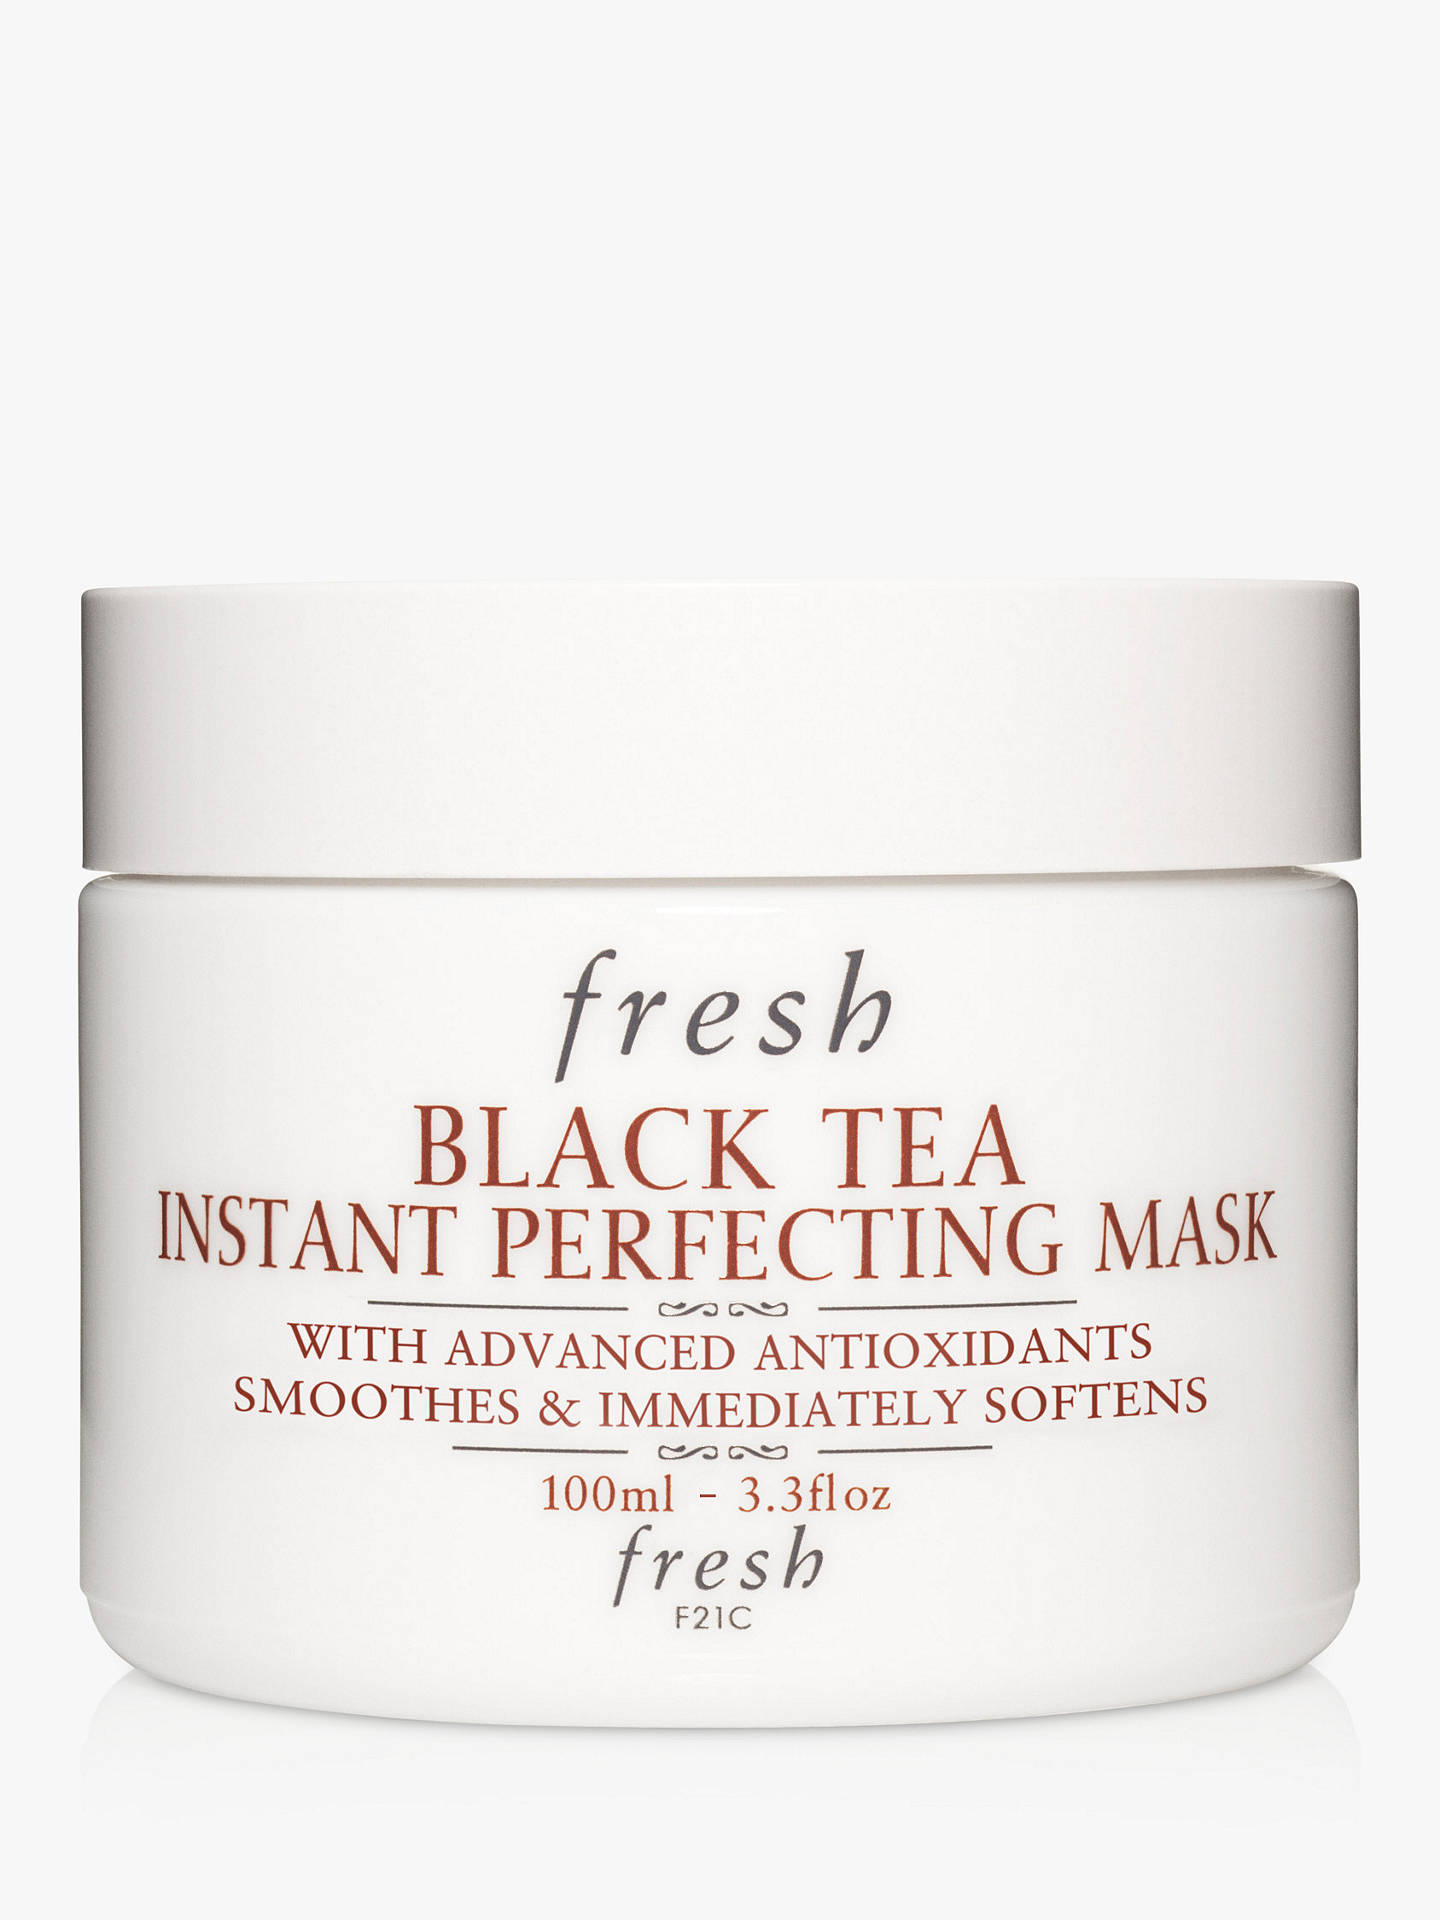 Buy Fresh Black Tea Instant Perfecting Mask, 100ml Online at johnlewis.com